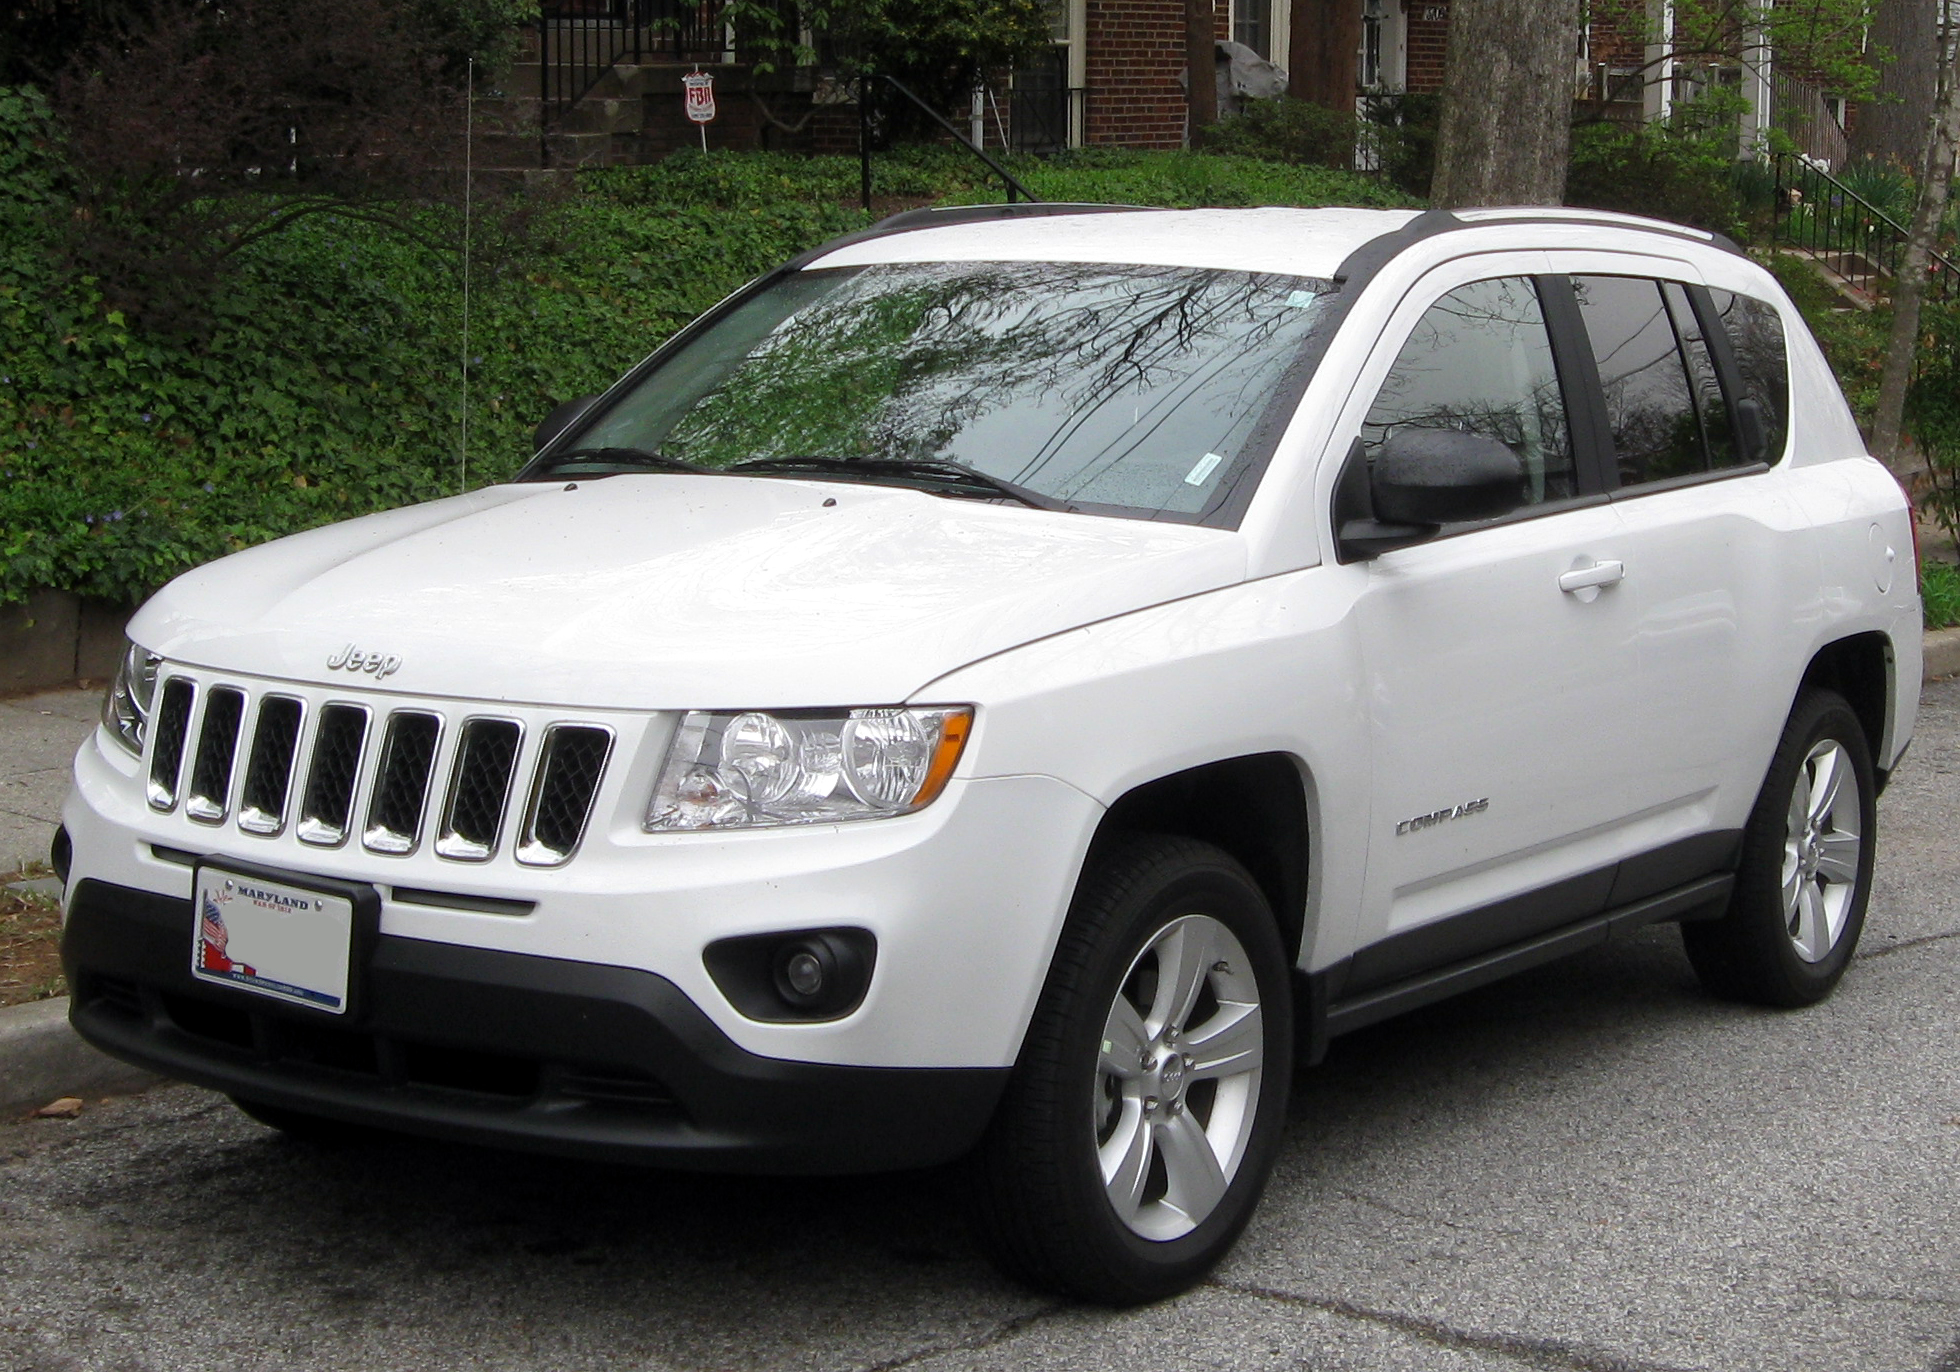 file jeep compass 03 21 2012 1 jpg wikimedia commons. Black Bedroom Furniture Sets. Home Design Ideas